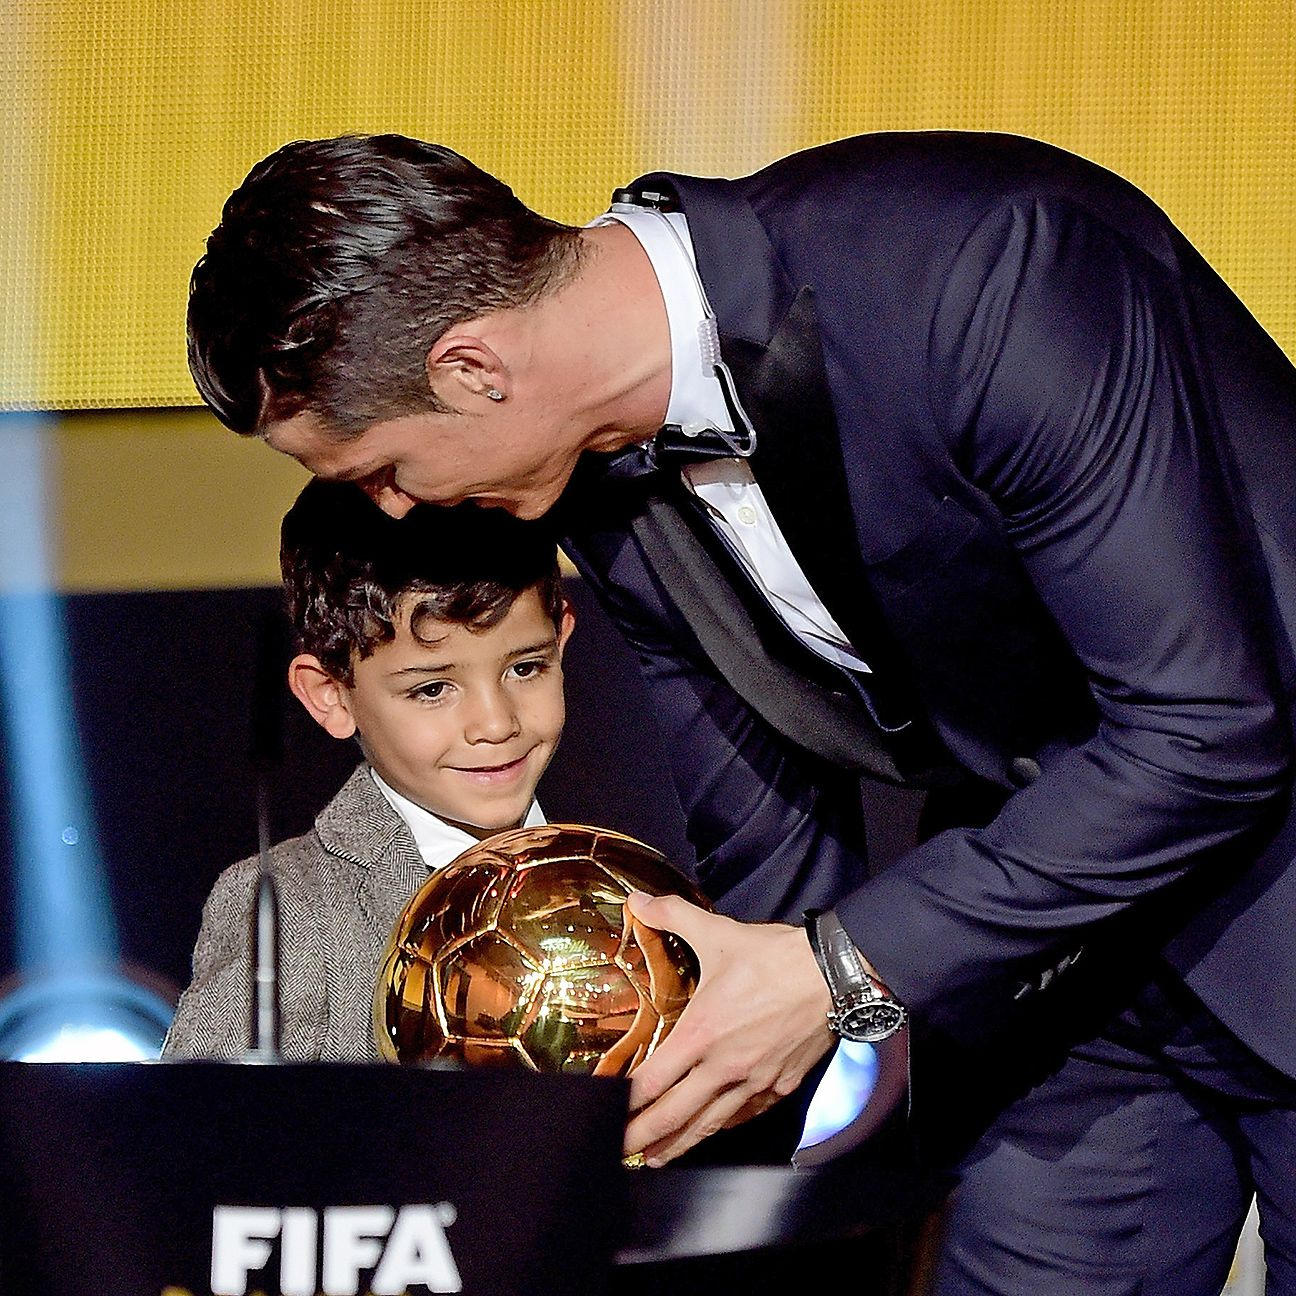 Ronaldo is portrayed as a doting father of Cristiano Jnr. in